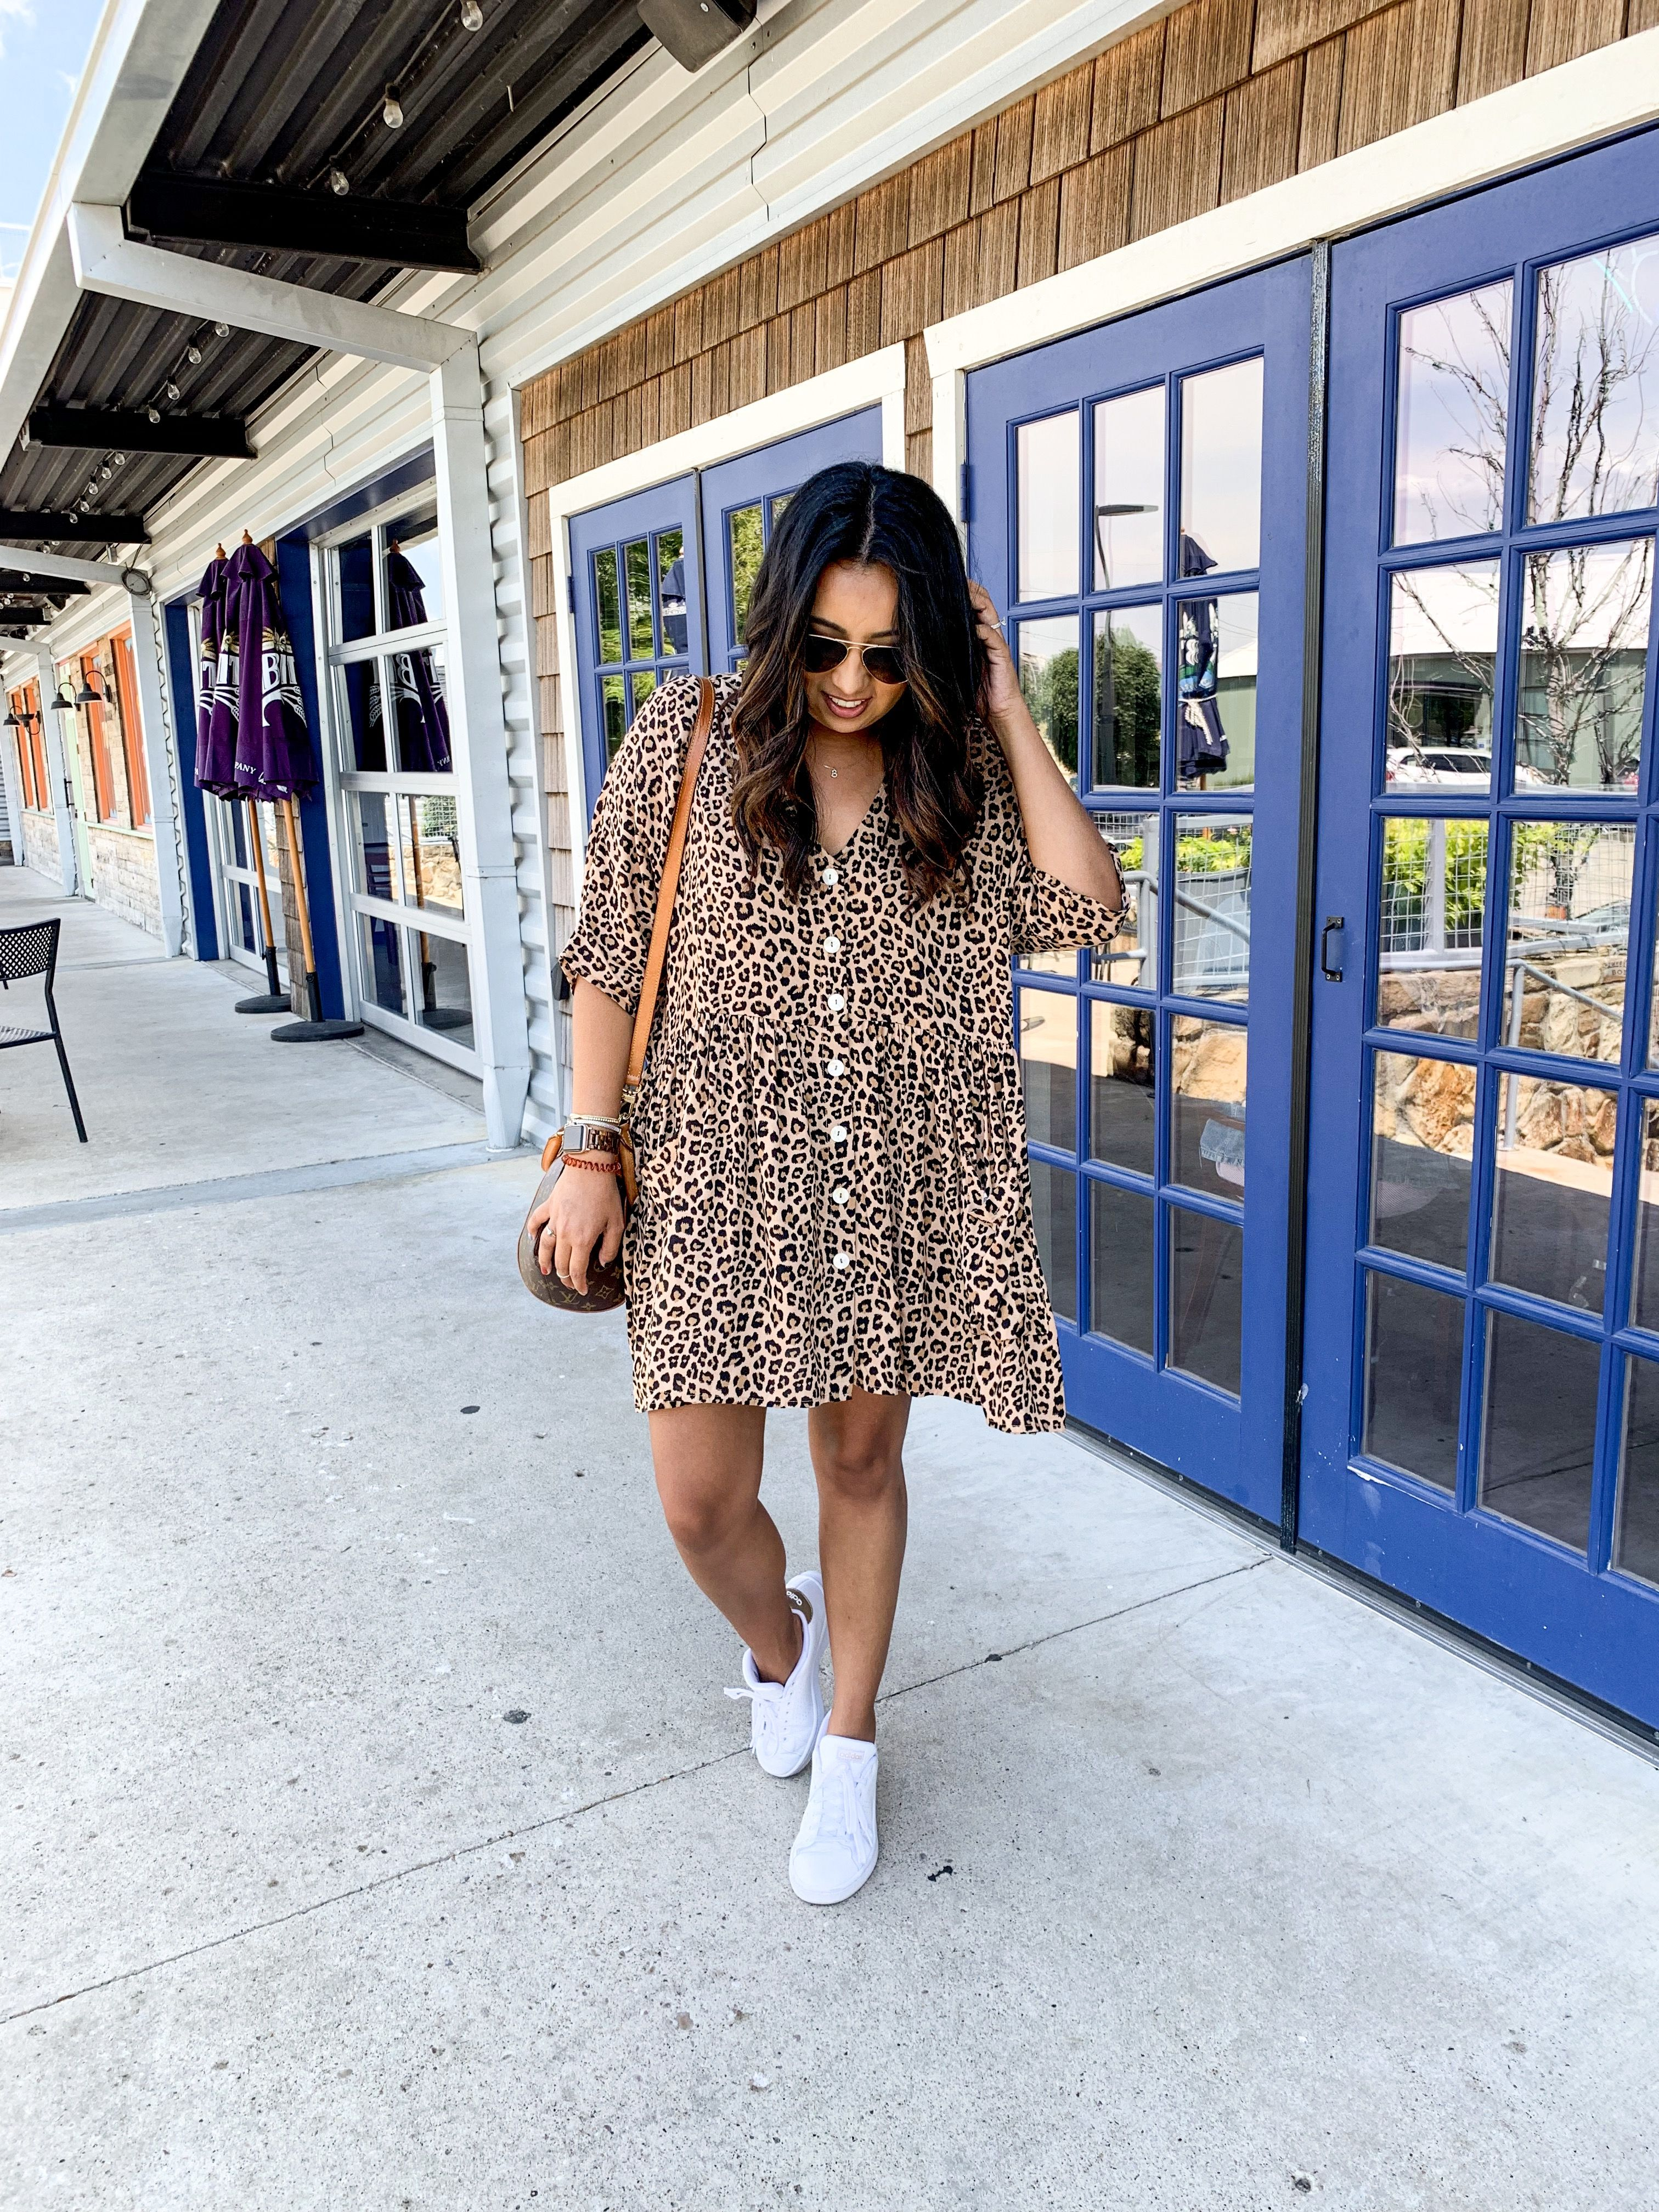 Casual Dress Outfit Ideas Dress With Sneakers Casual Dress Outfits Dress With Sneakers Leopard Print Outfits [ 4032 x 3024 Pixel ]